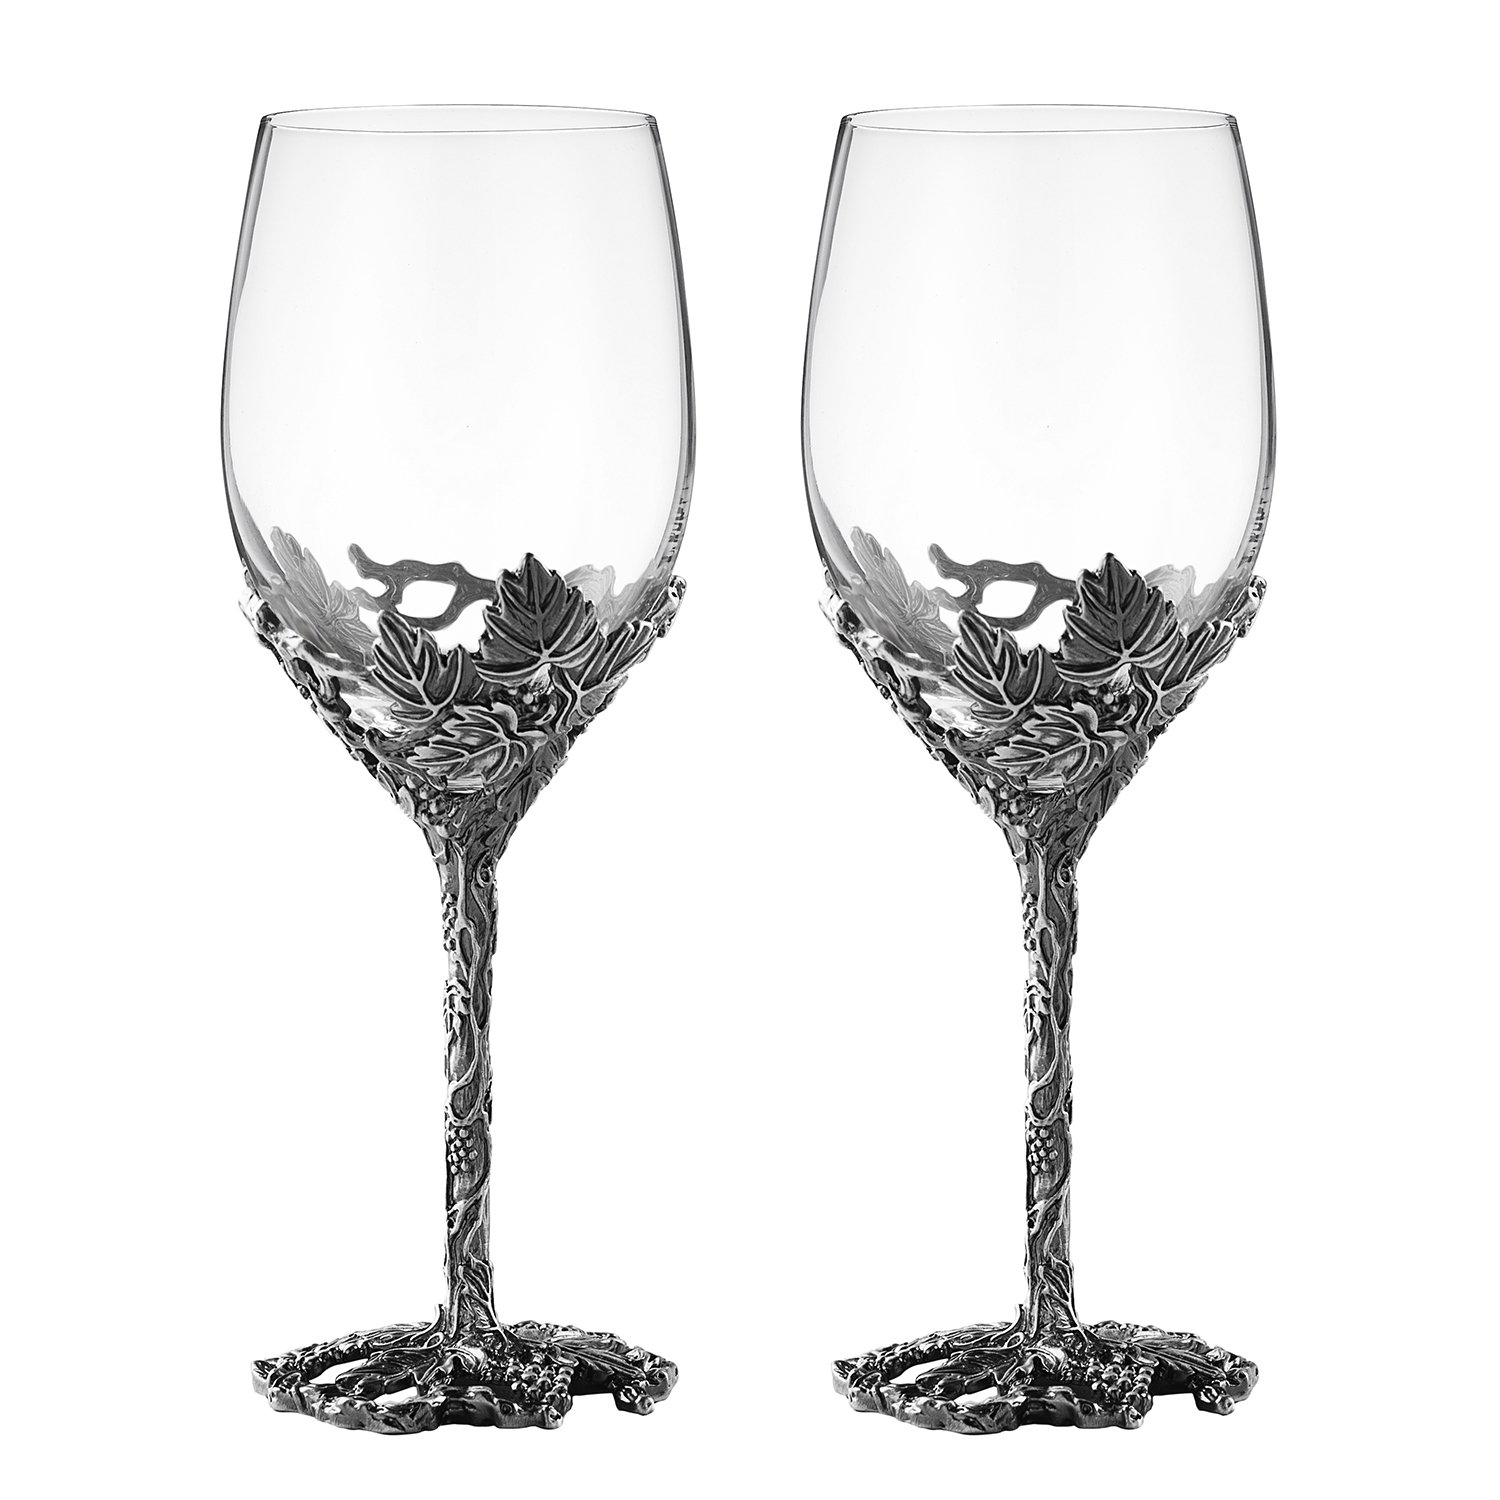 12oz Wine Glasses Set of 2, Hand Blown Crystal Wine Glasses Made of Lead-free Glass and Enamels